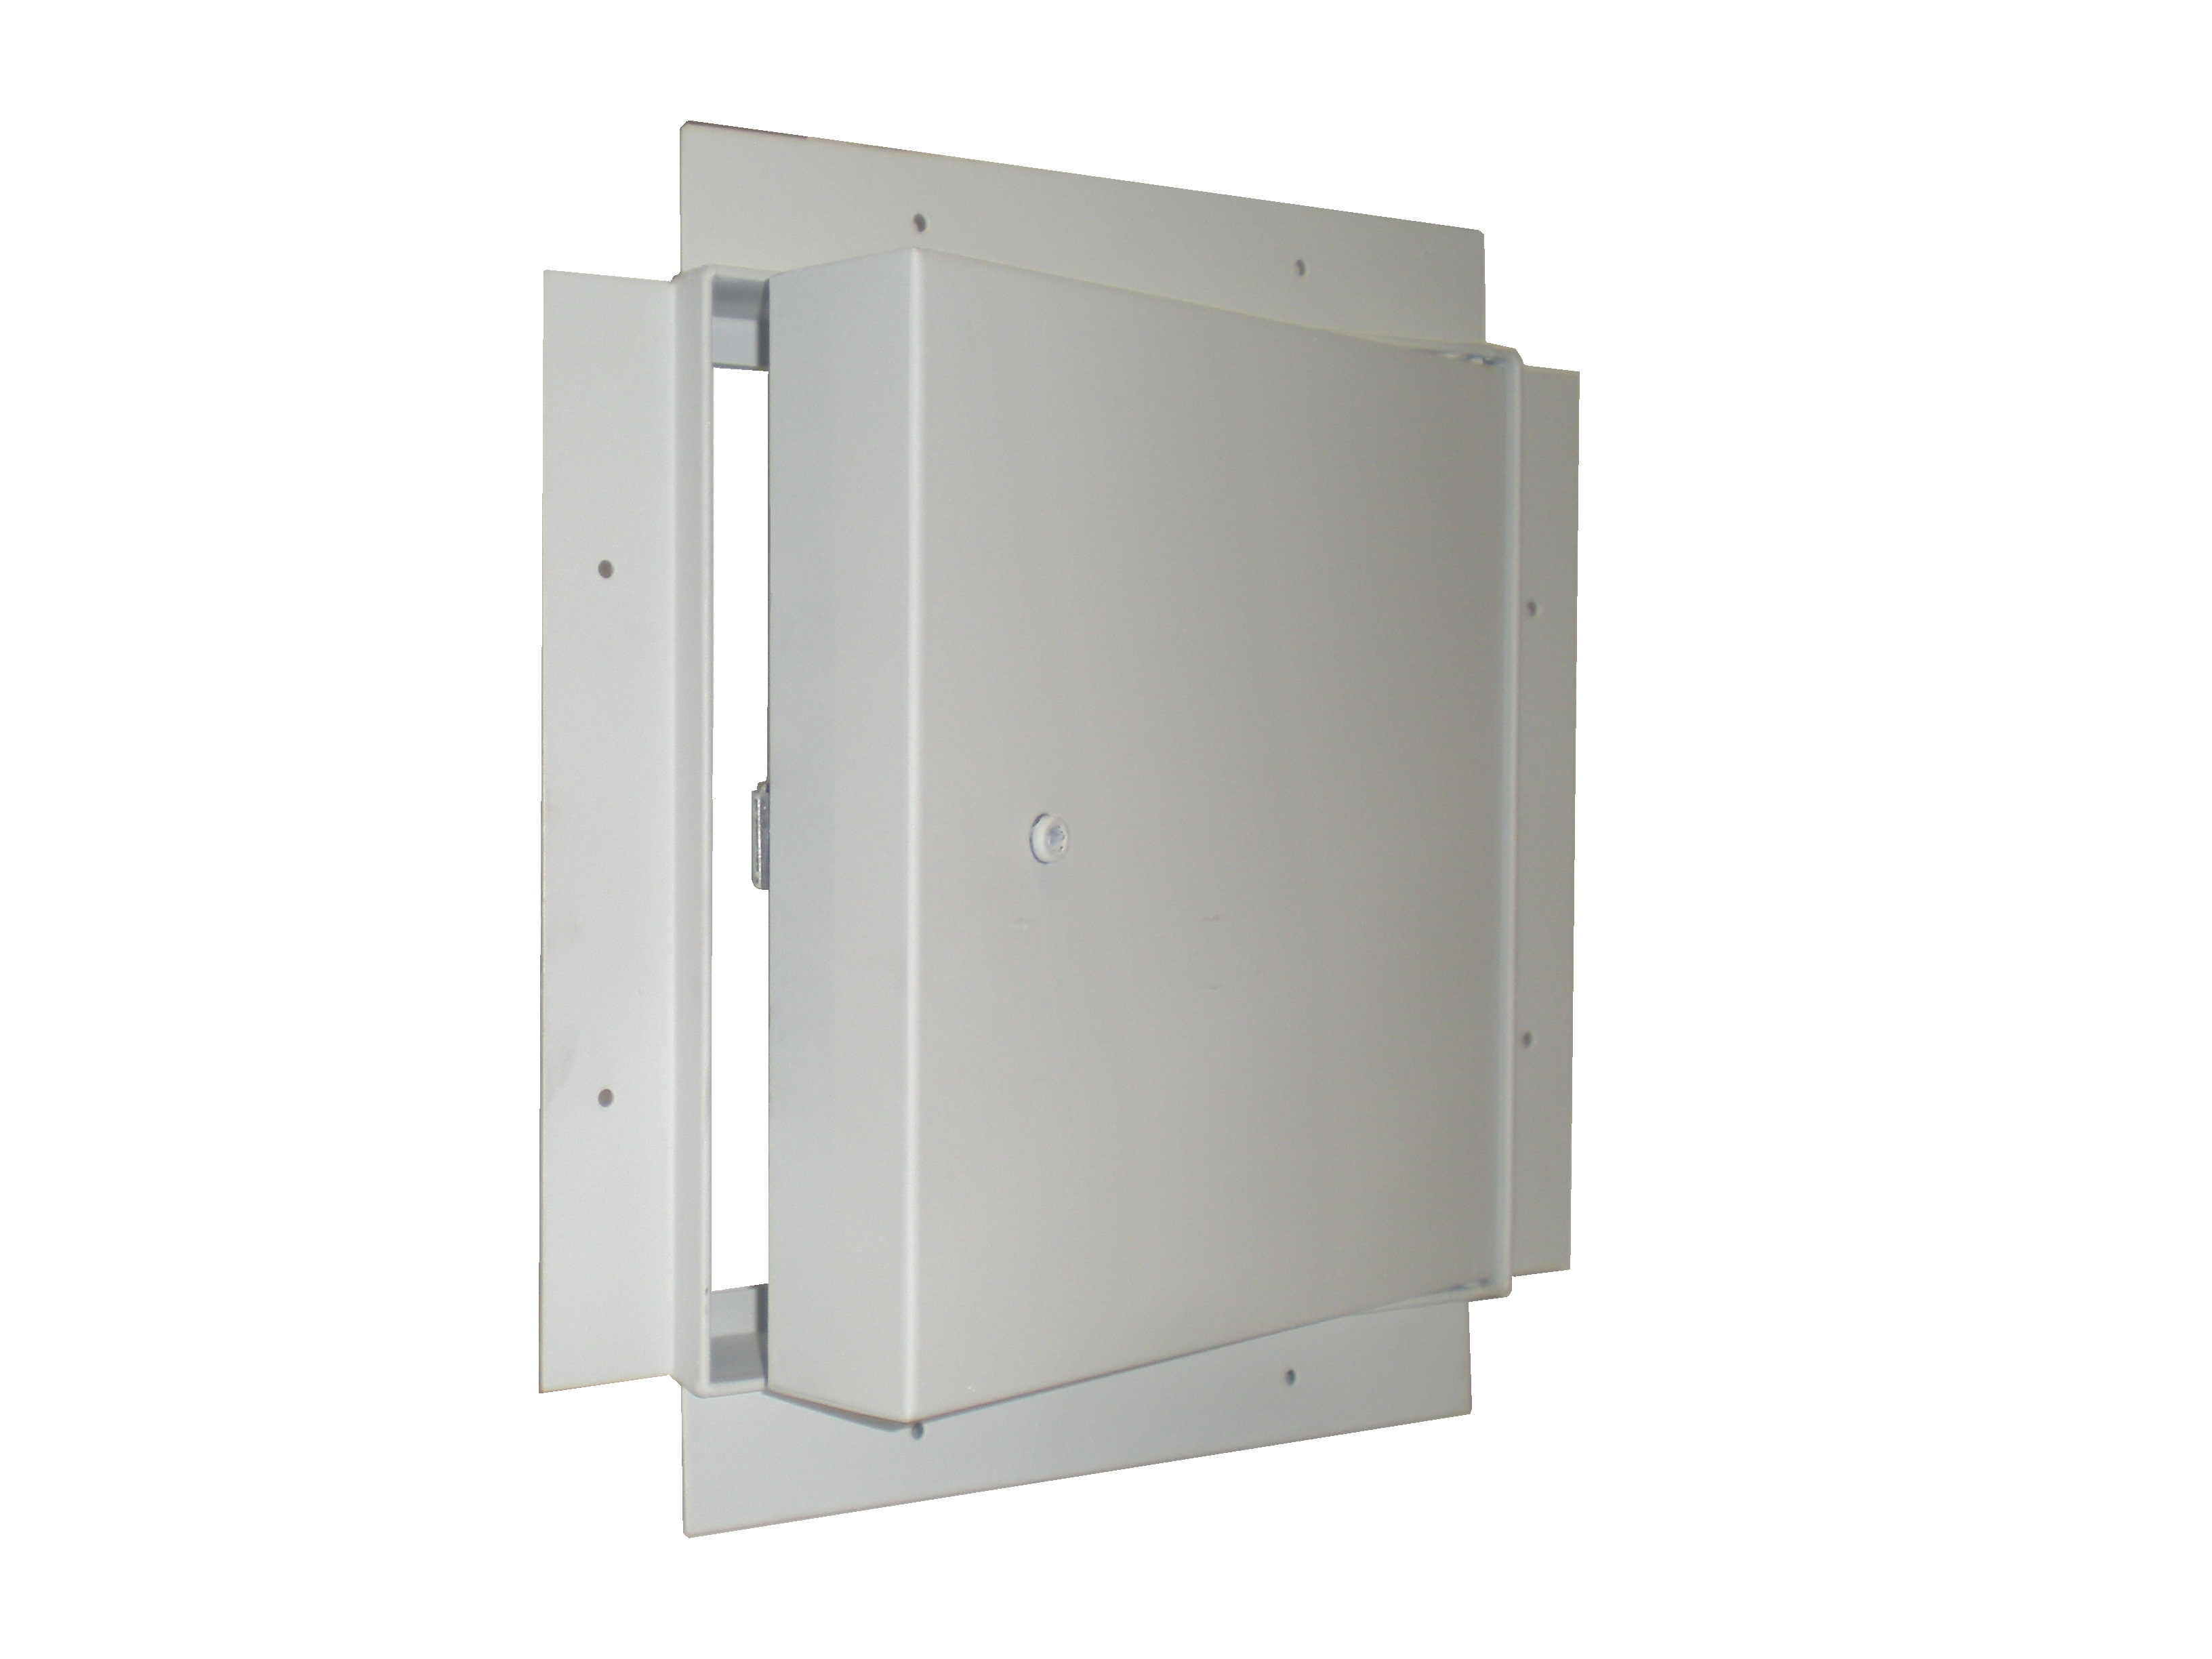 Fd3rf 3 hour fire rated recessed flange access panel for for 1 hr rated door